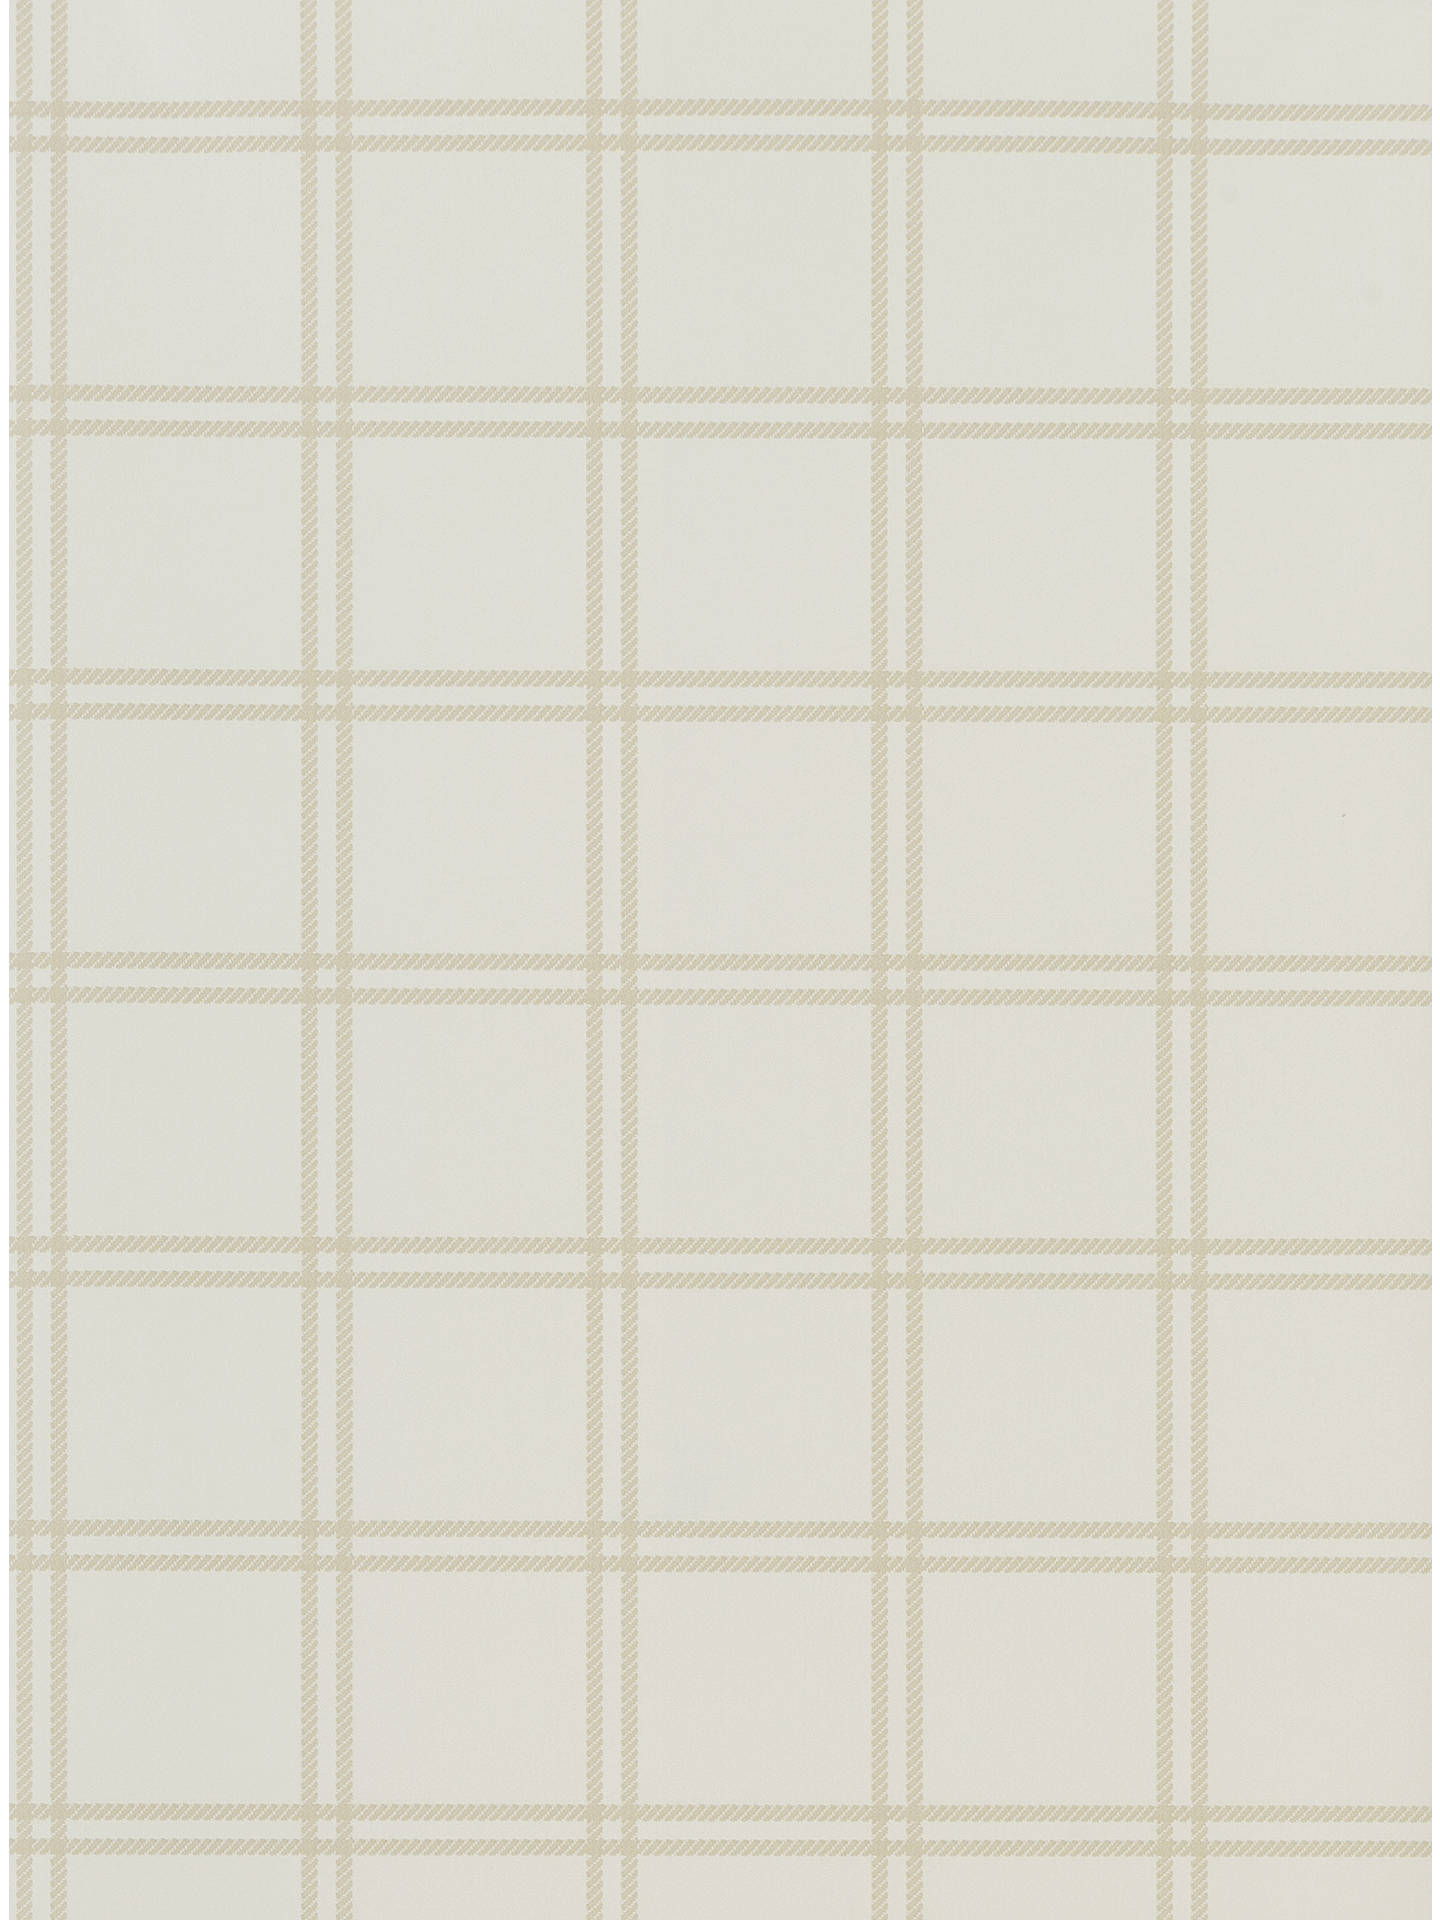 Buy Ralph Lauren Shipley Windowpane Wallpaper PRL5001/06 Online at johnlewis.com